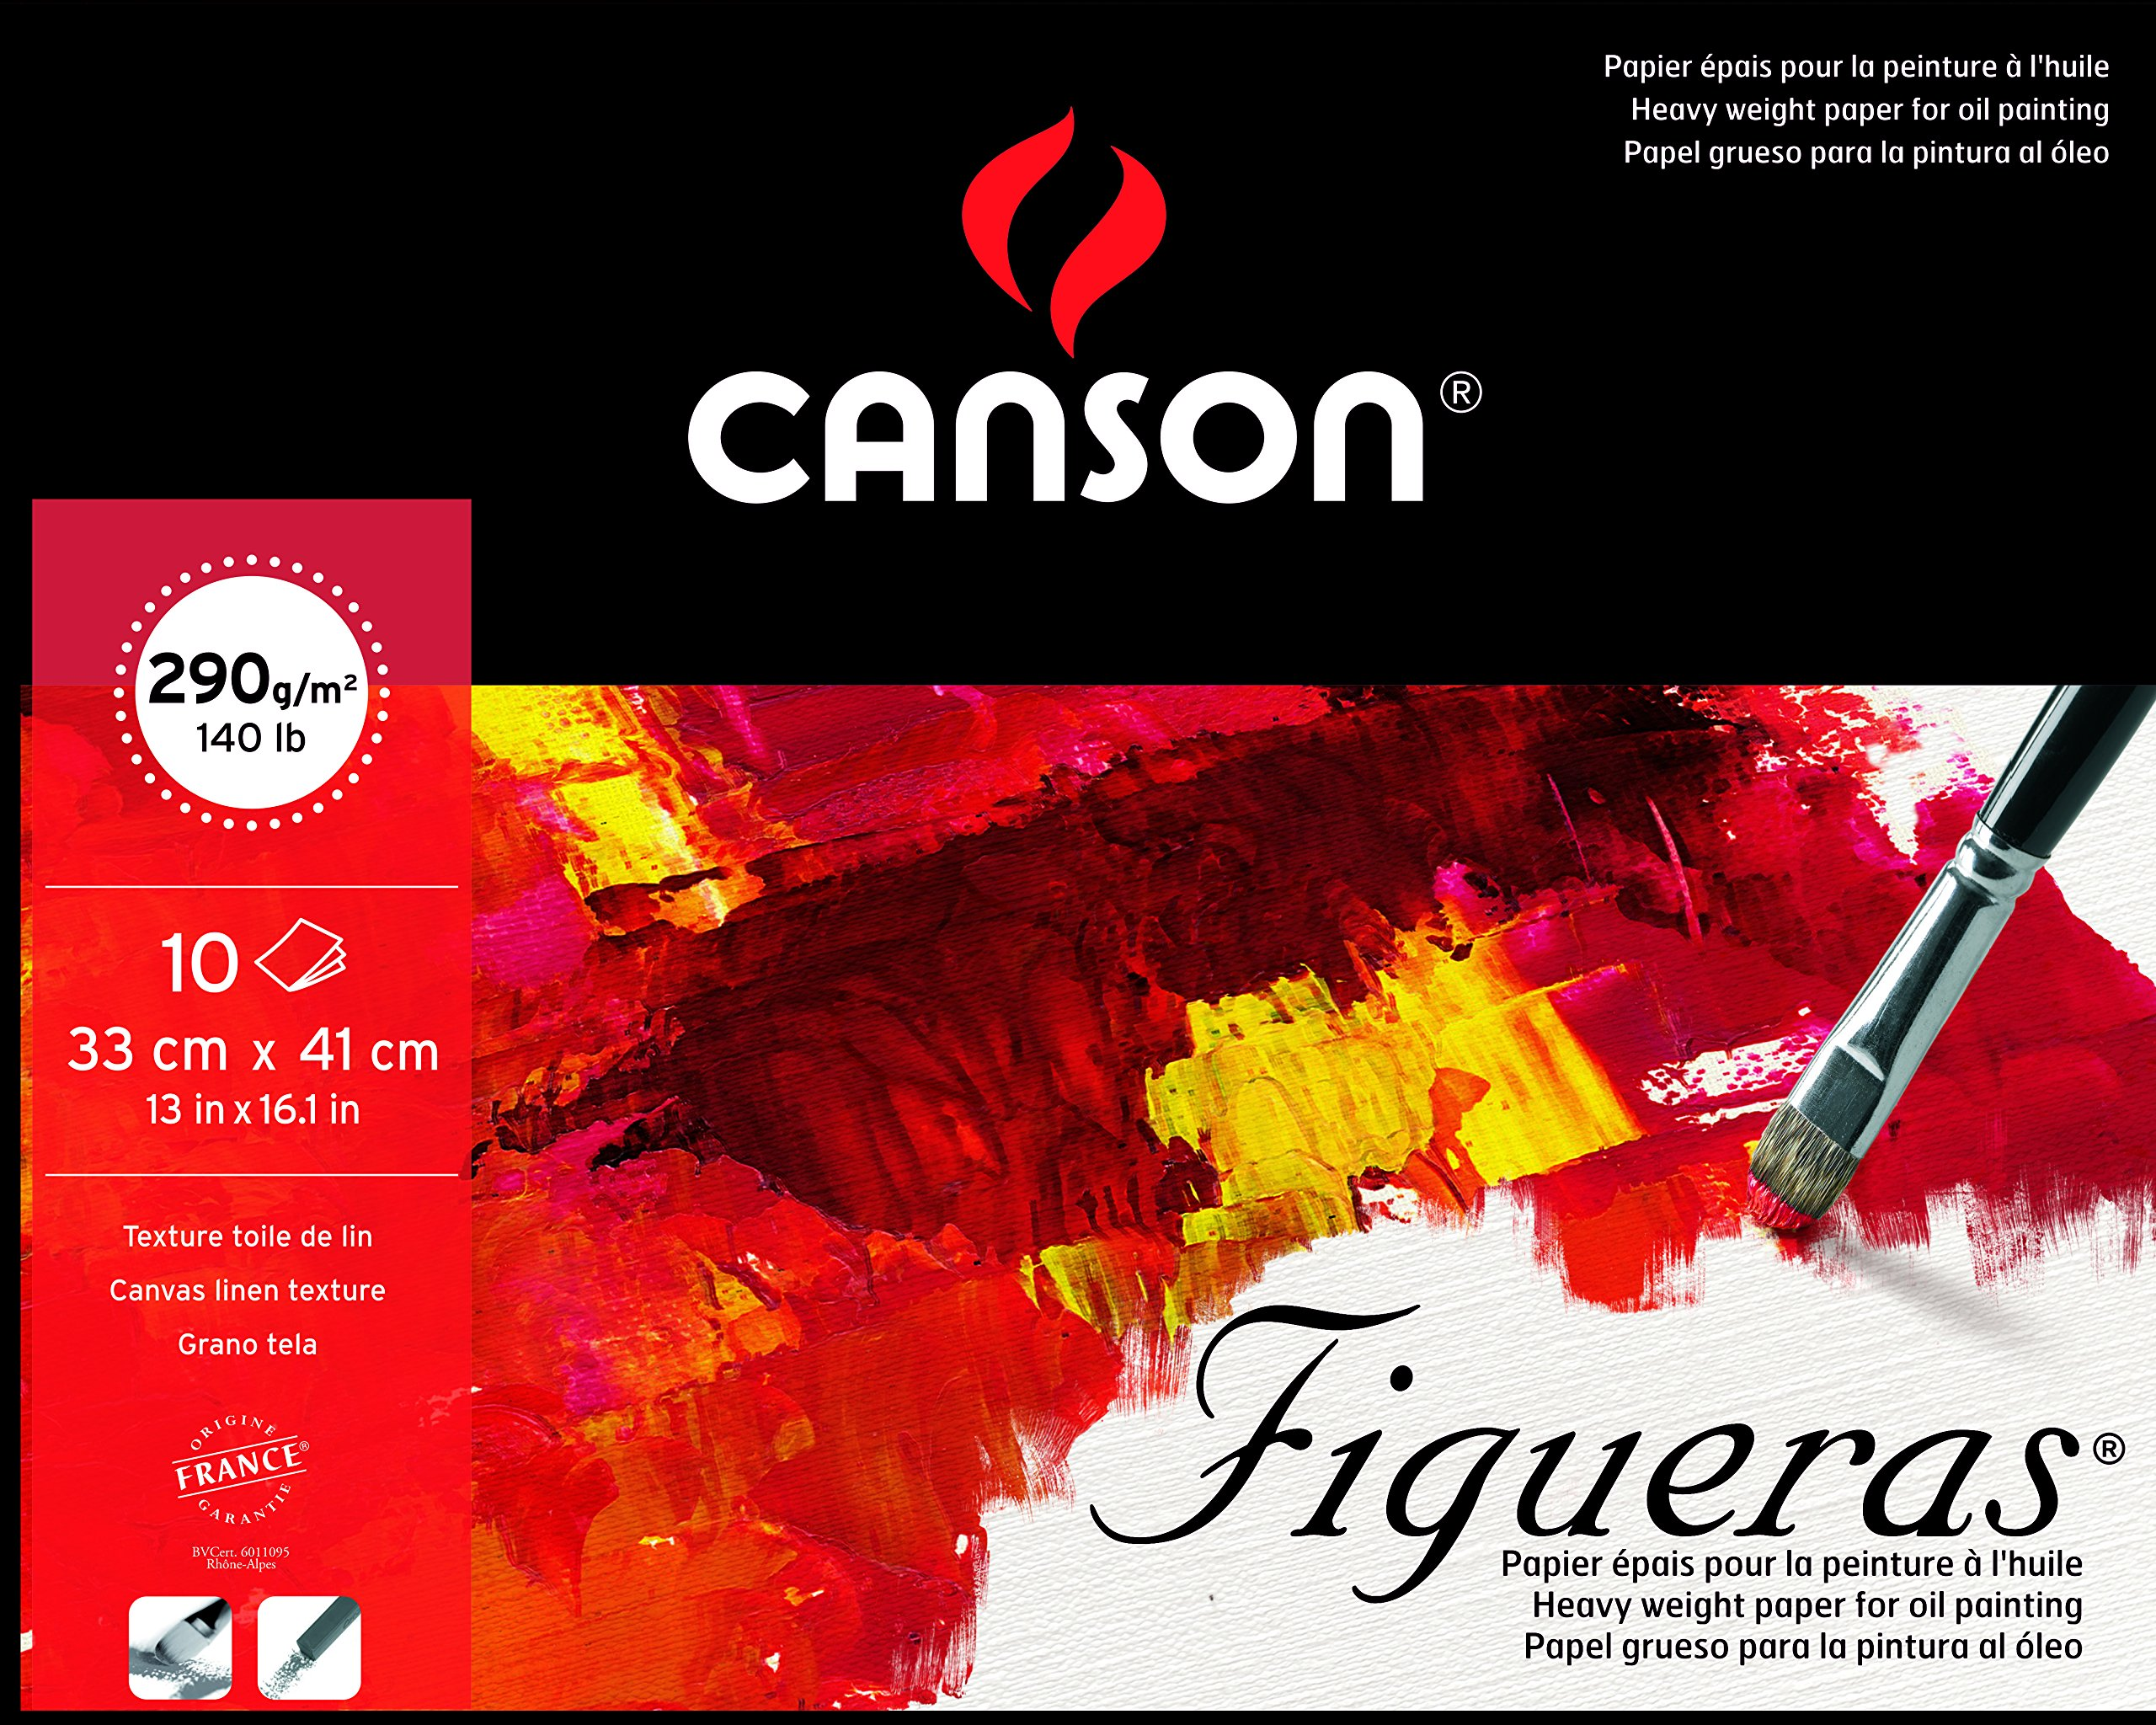 Canson : Figueras : Oil & Acrylic Paper : Pad : 33x41cm : 13x16in : Canvas Texture by Canson